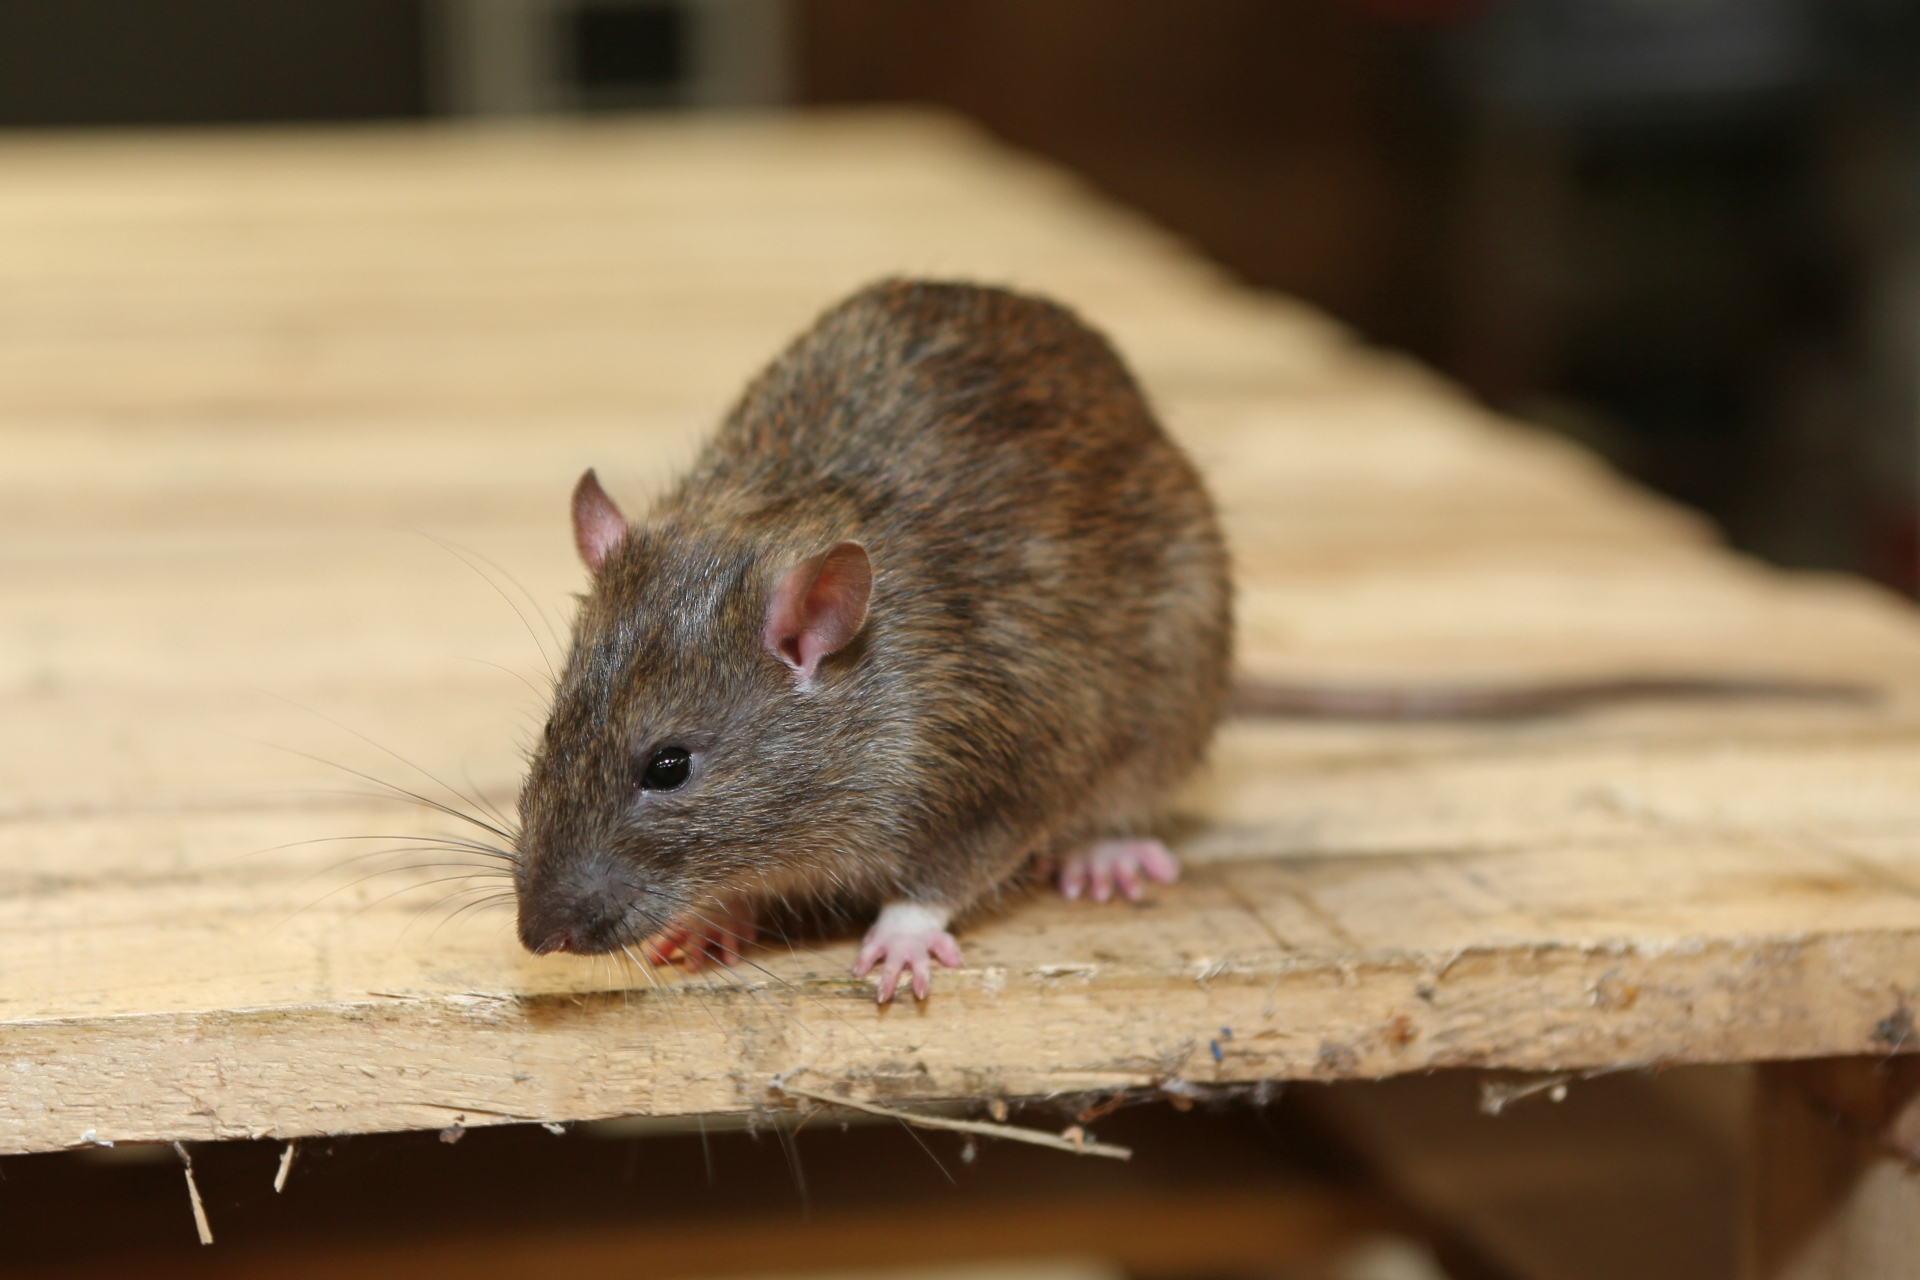 Rat Infestation, Pest Control in Southgate, N14. Call Now 020 8166 9746